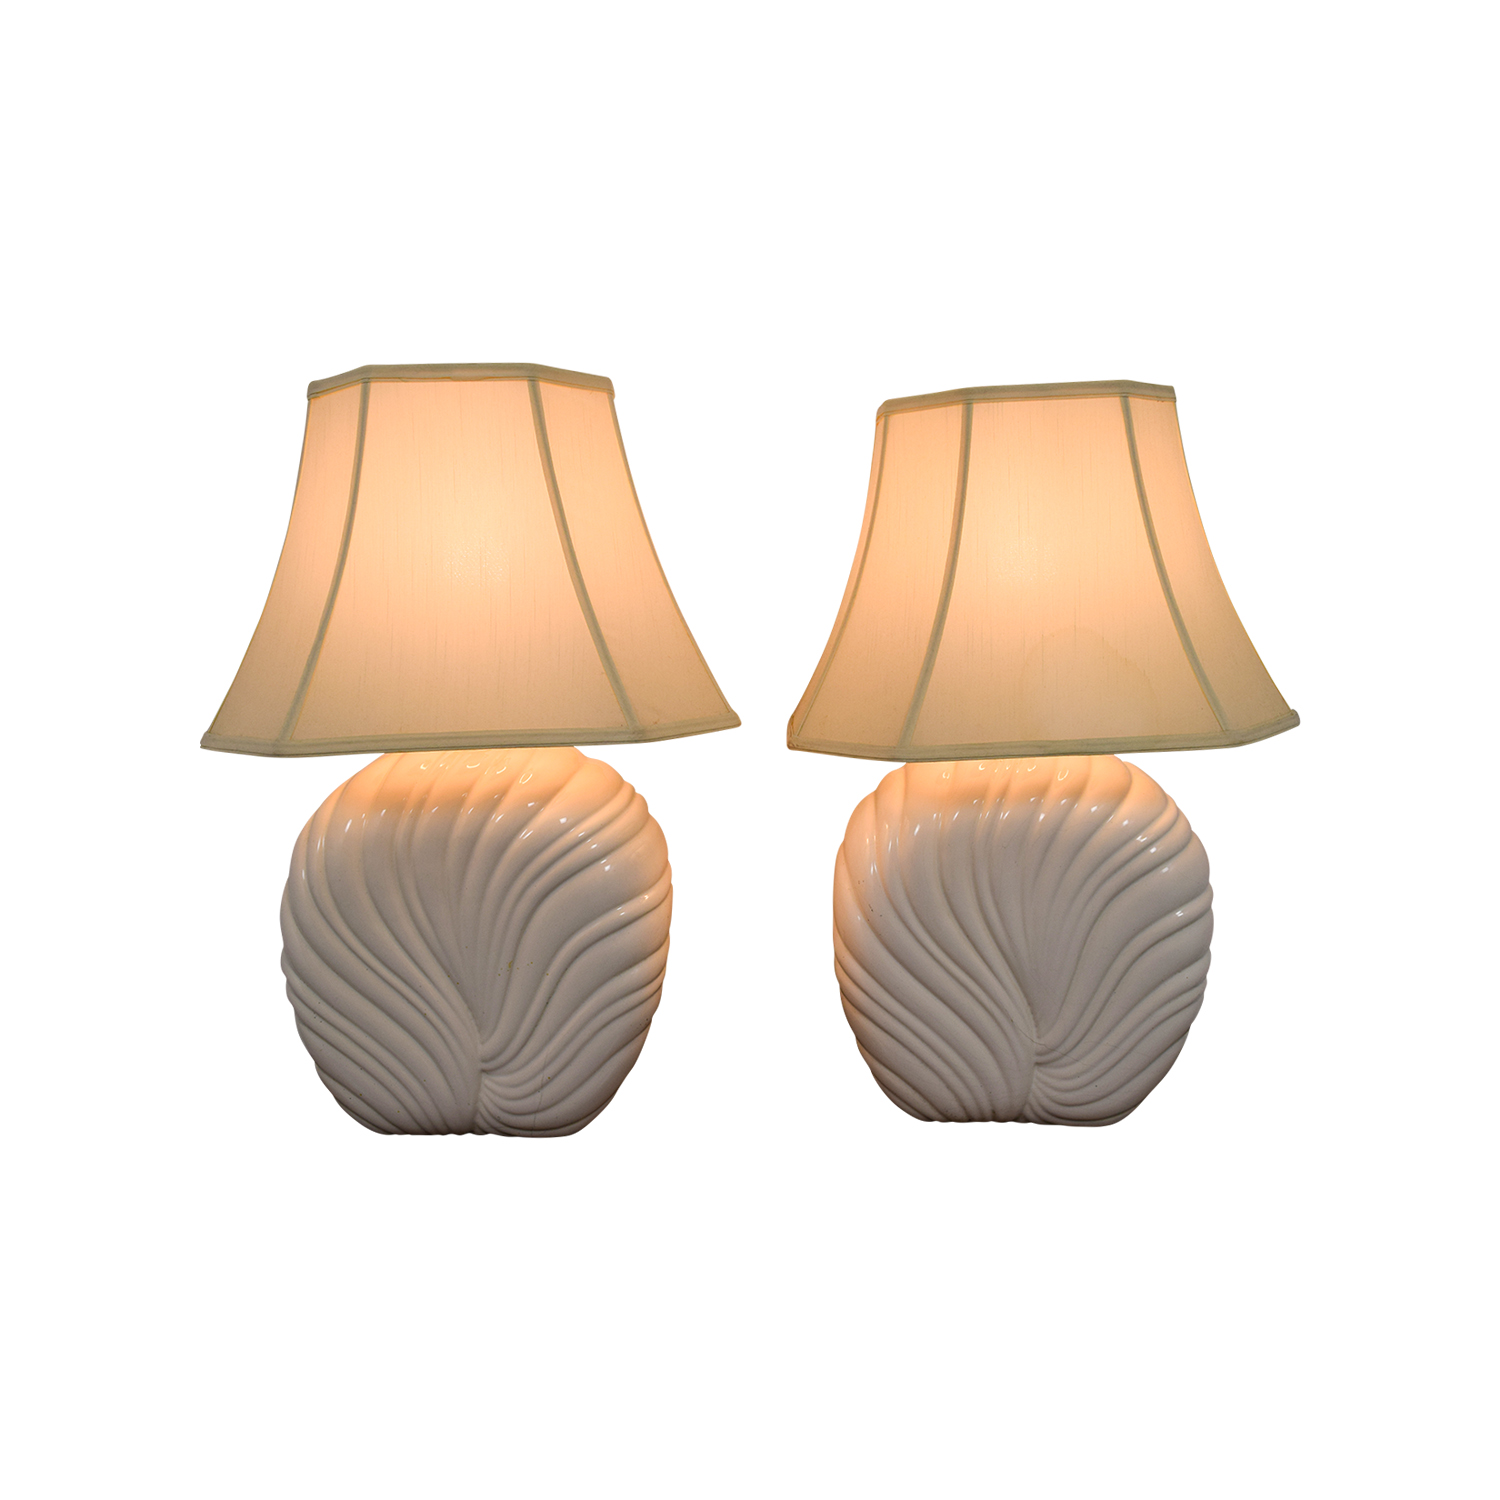 buy White Shell Lamps Lamps